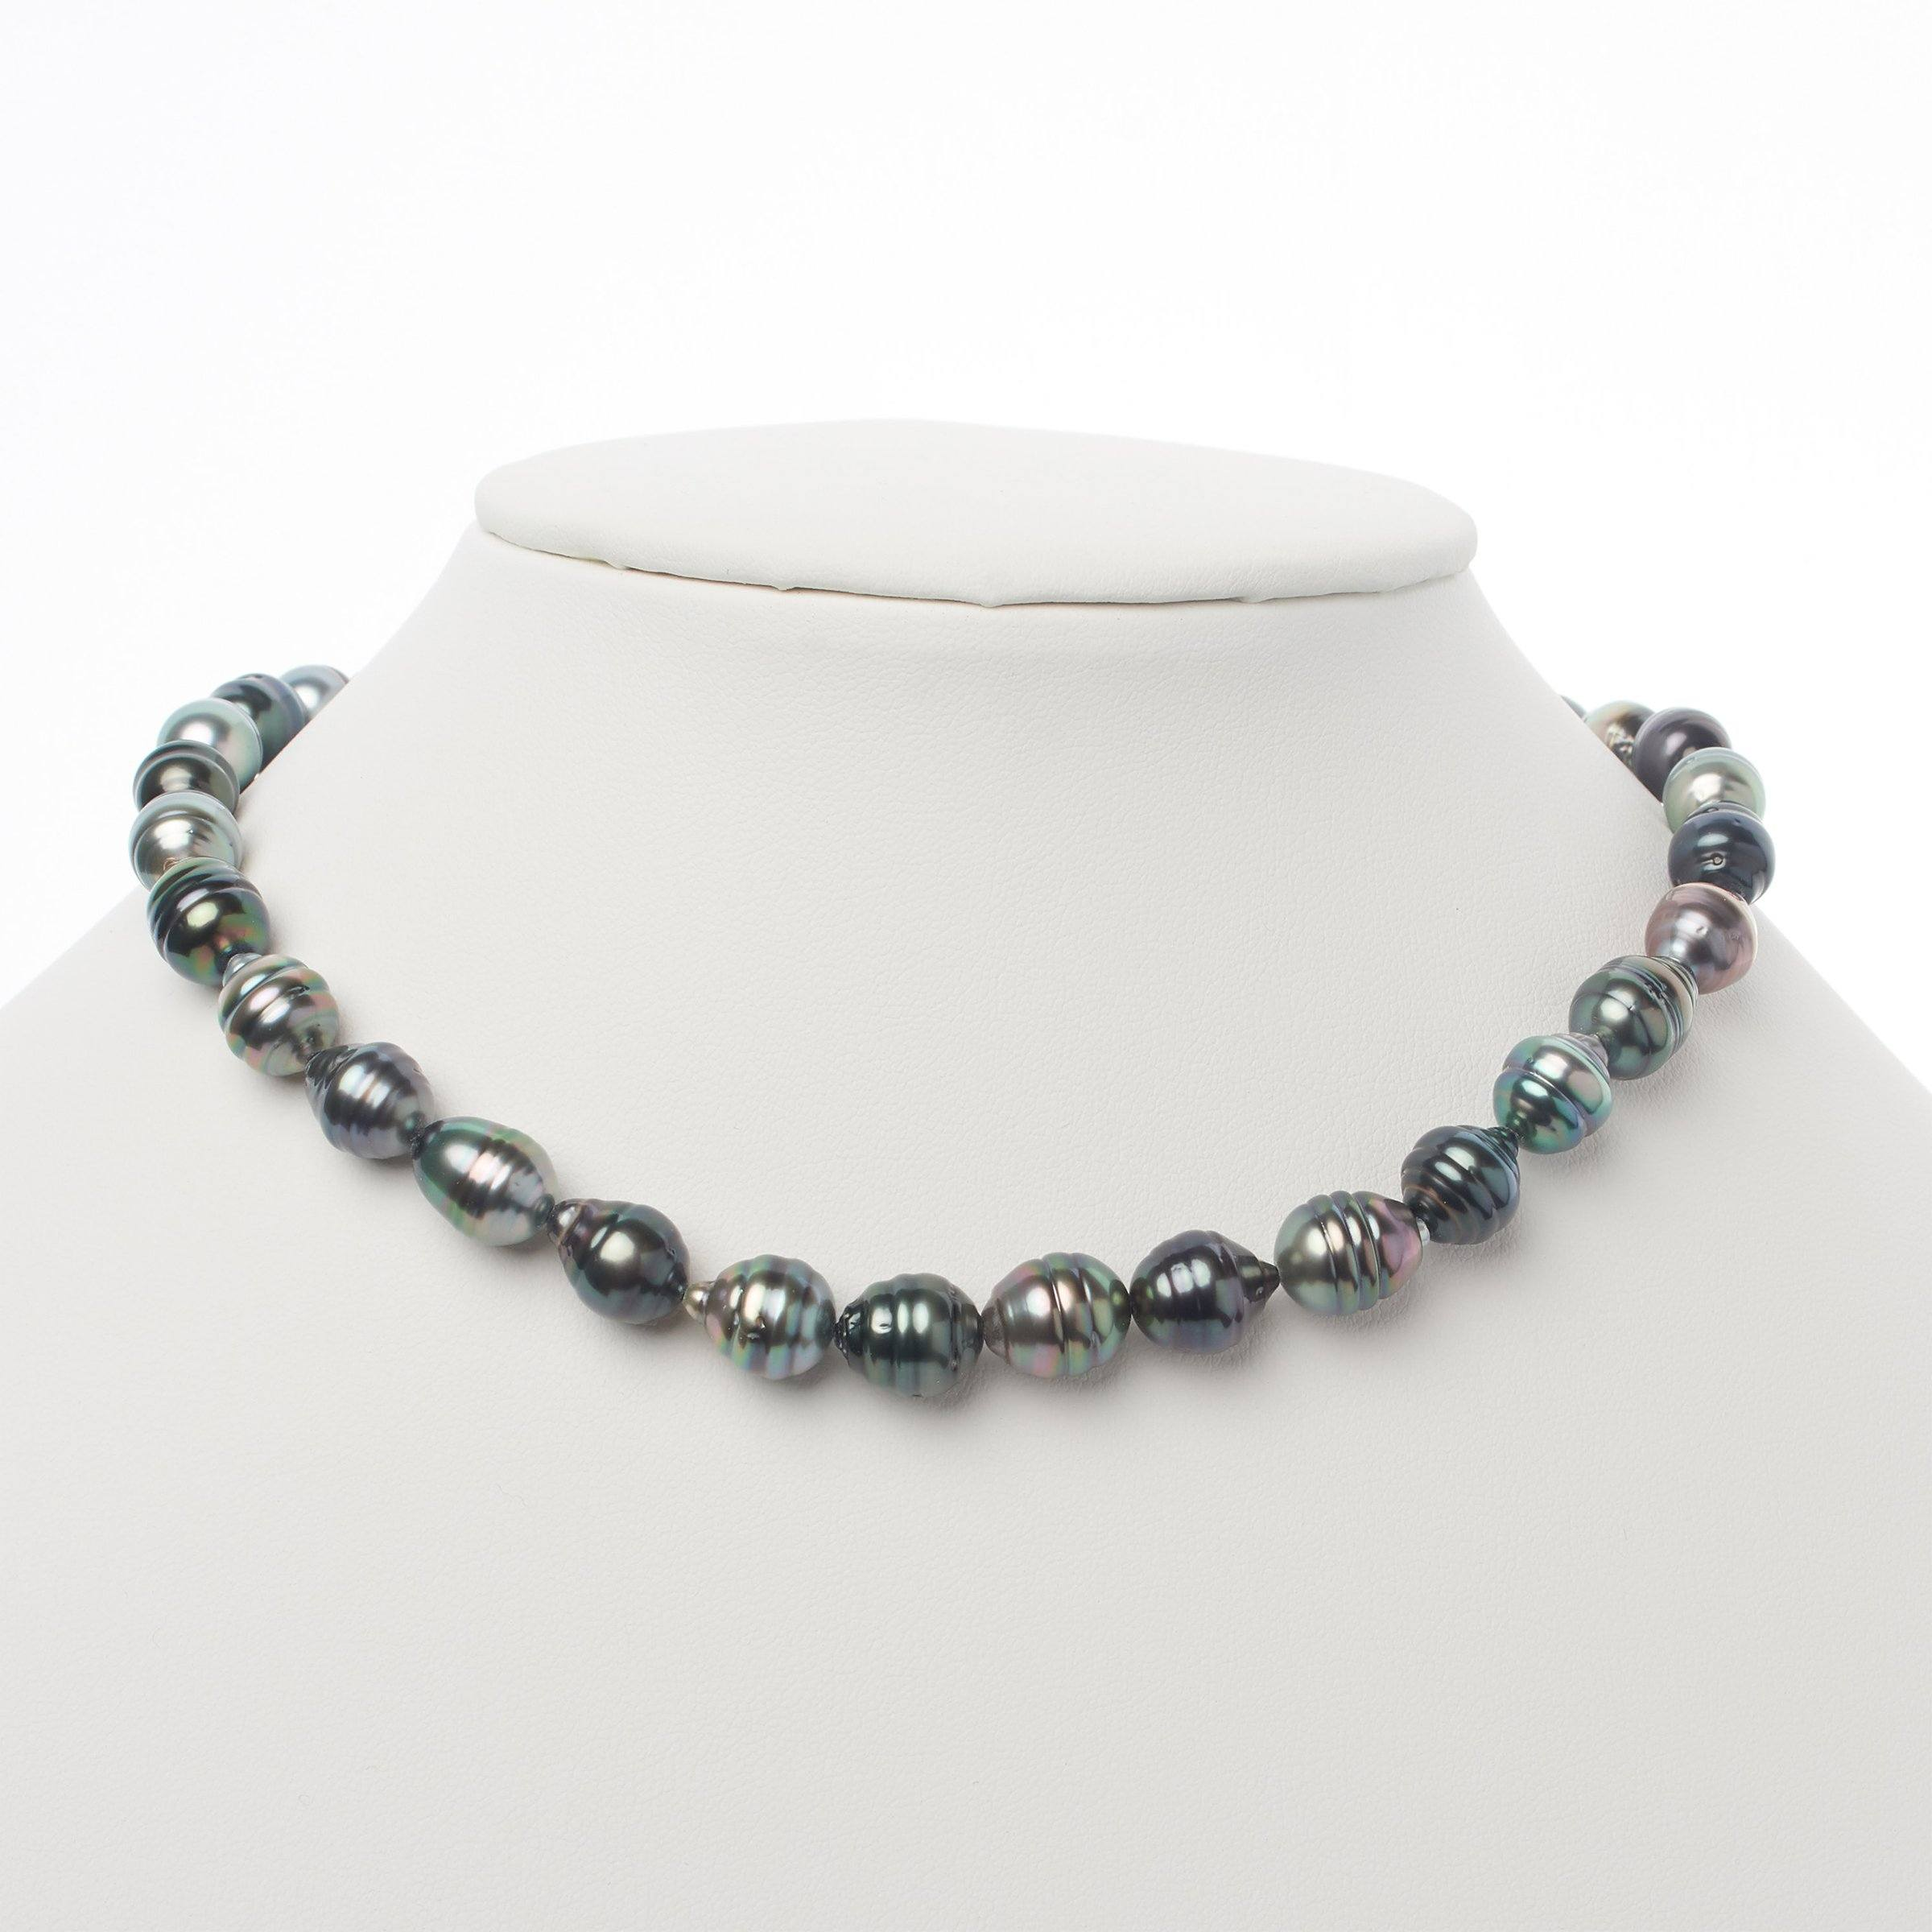 8.1-10.4 mm AA+ Tahitian Baroque Pearl Necklace